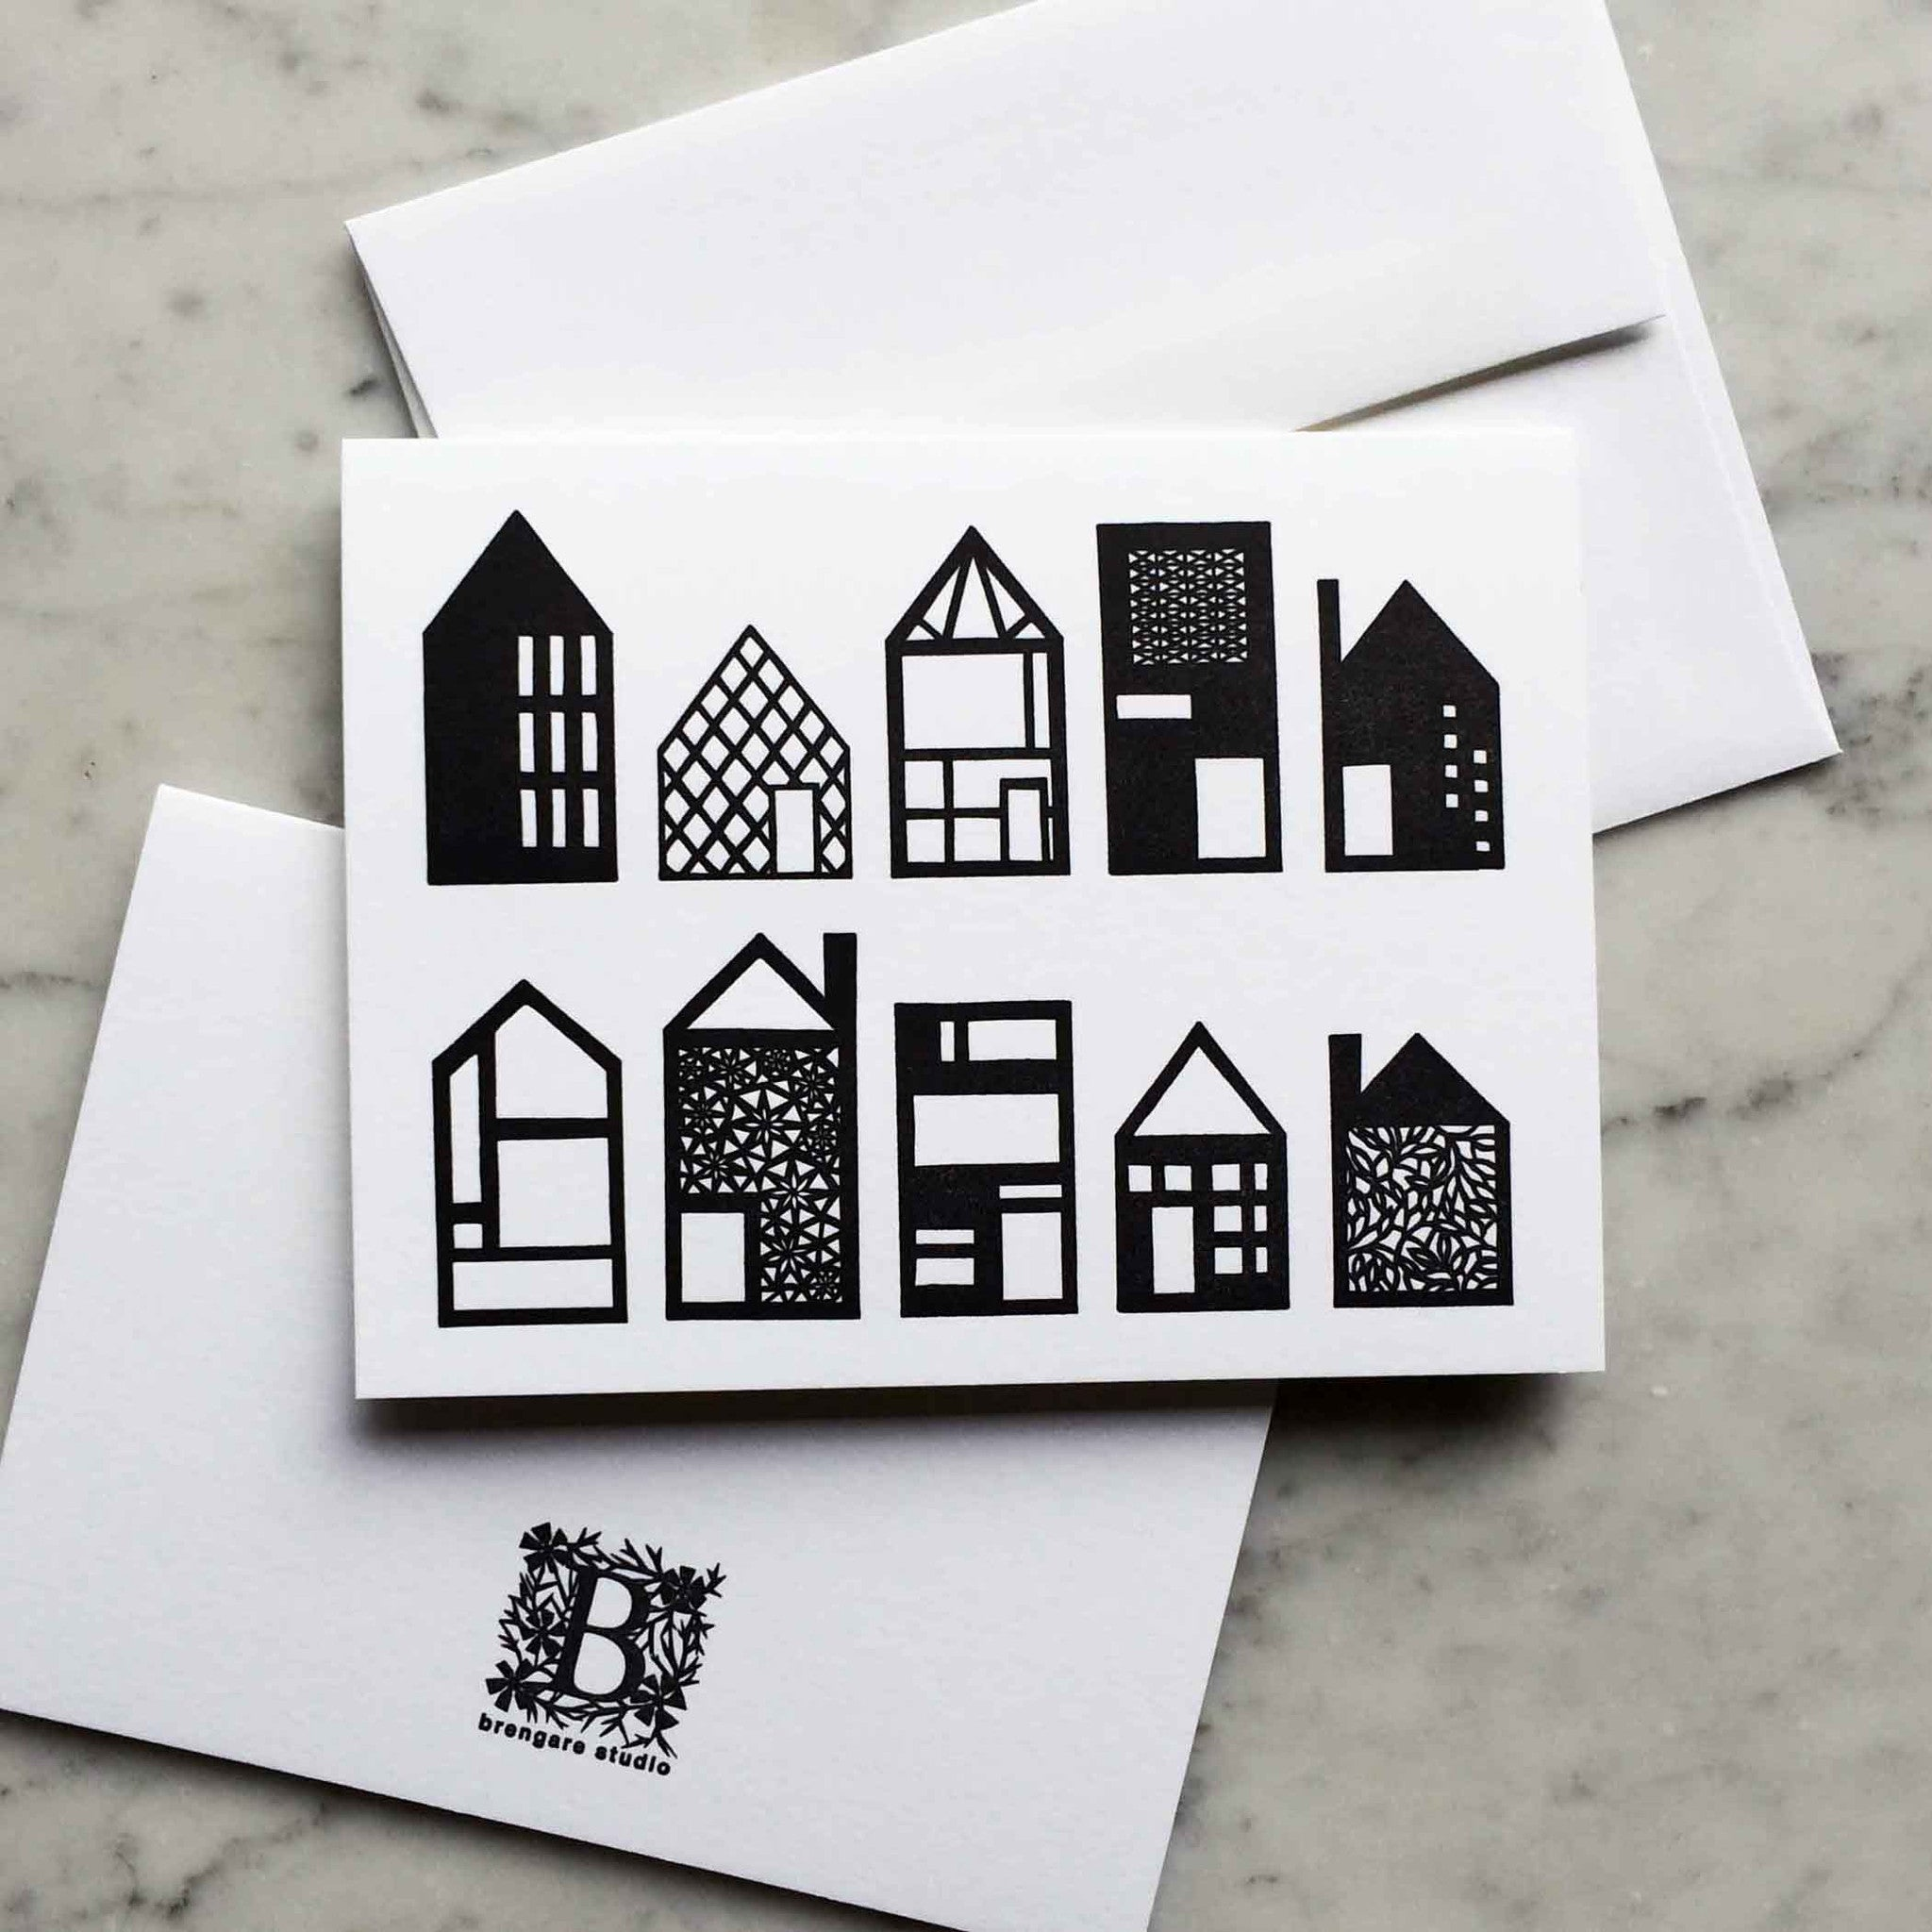 Paper houses blank letterpress greeting card brengare studio paper houses blank letterpress greeting card m4hsunfo